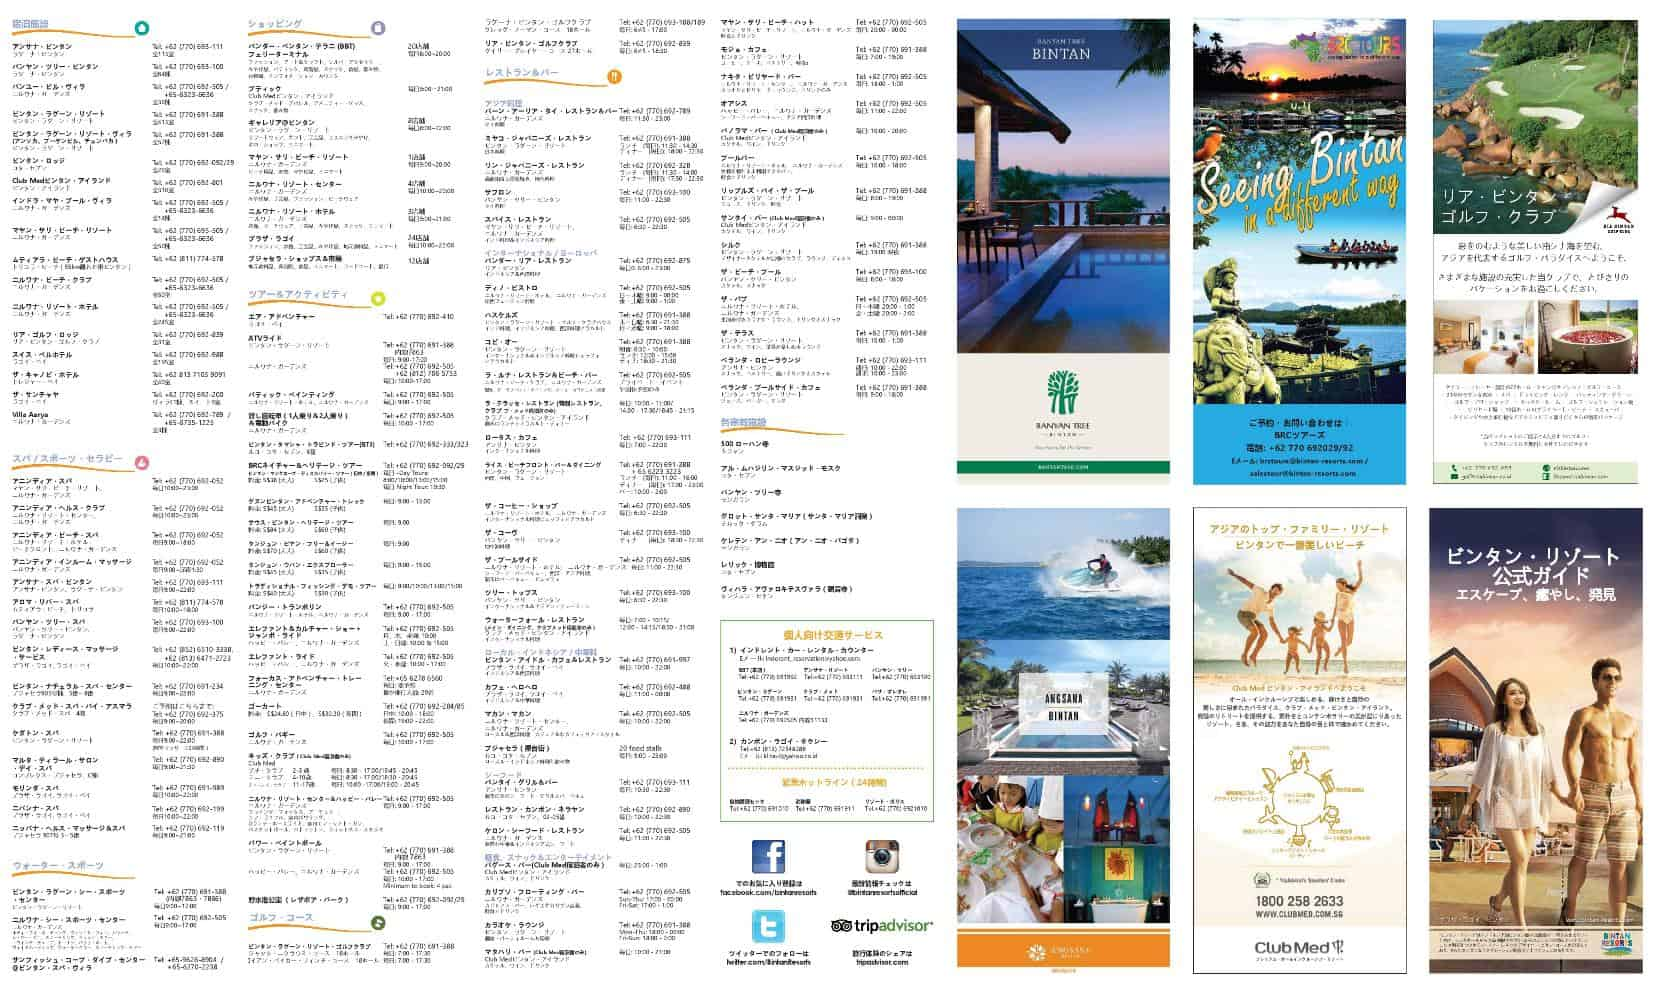 Bintan Resorts Arrival Guide Jap-page-001